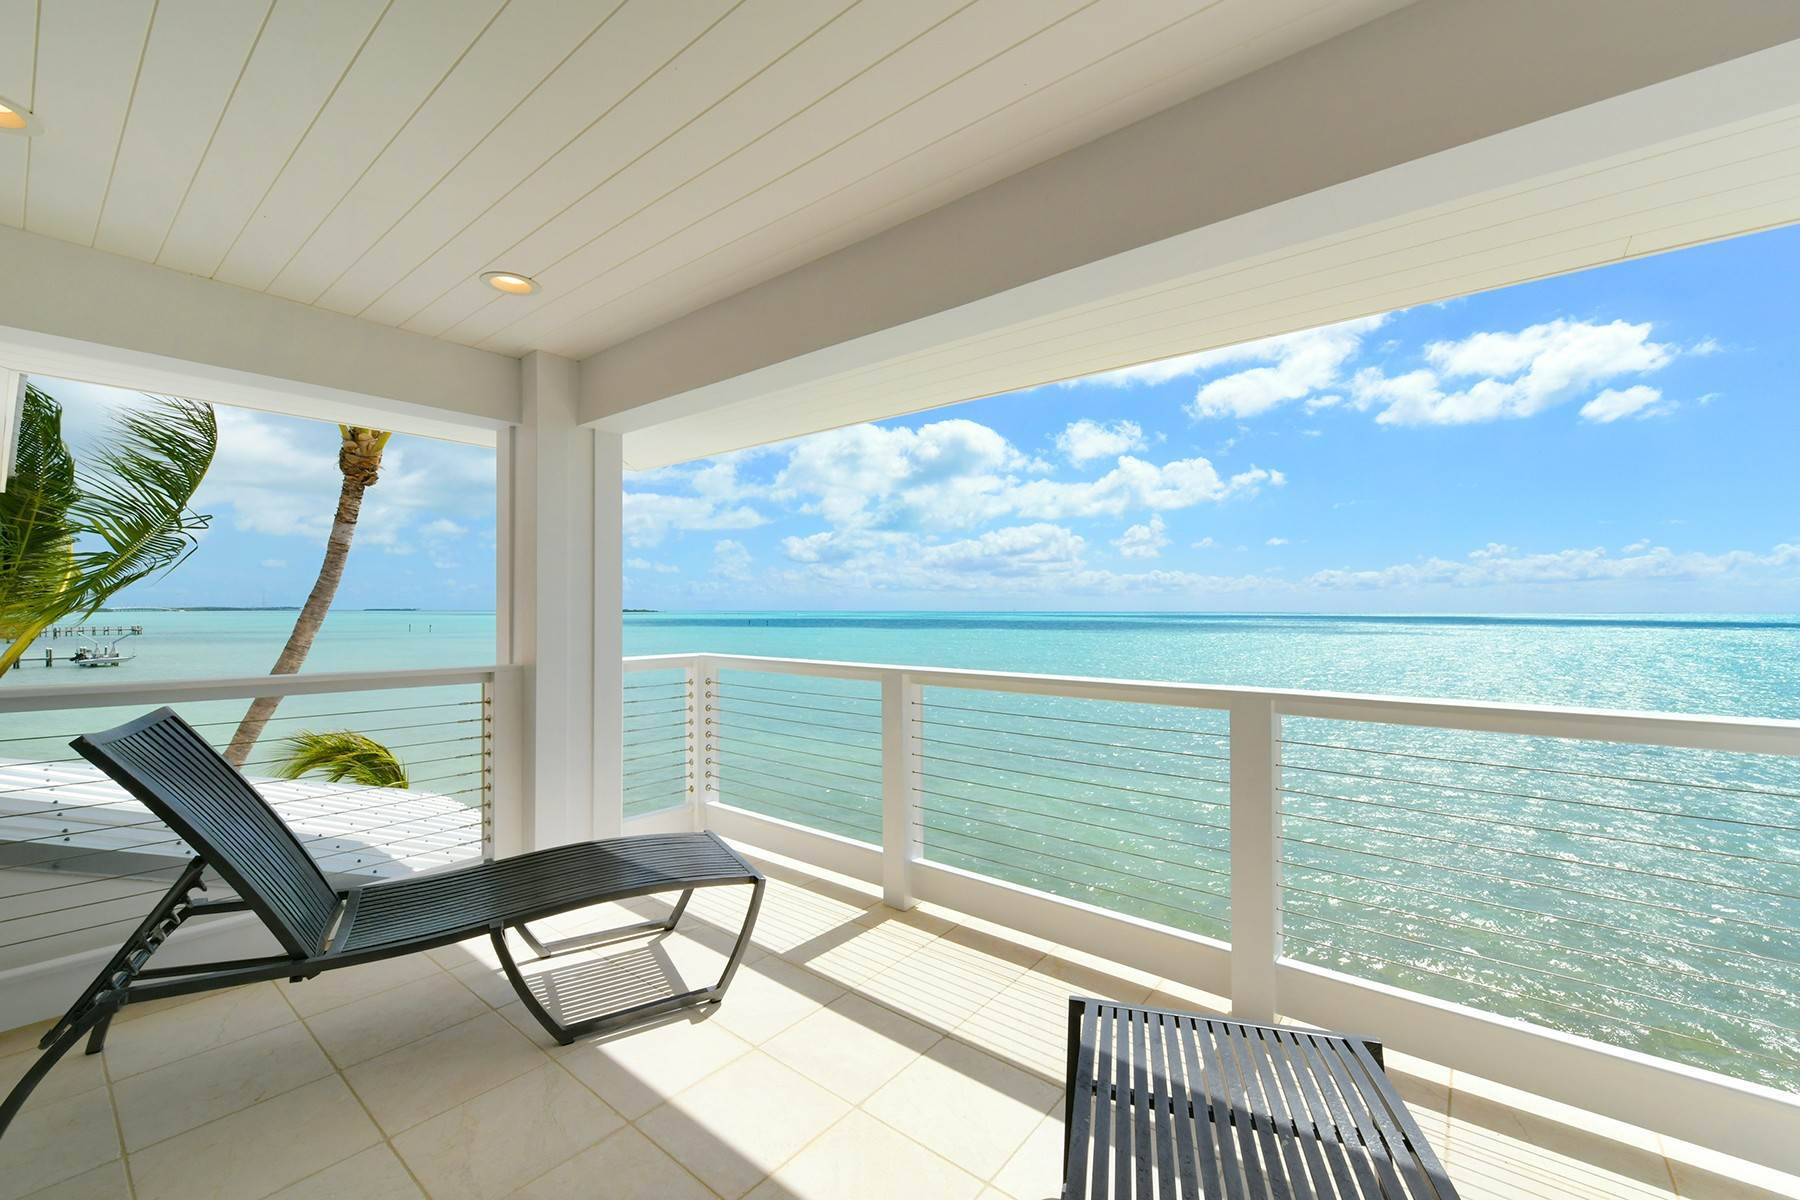 Single Family Homes for Sale at Exquisite Oceanfront Mini-Estate 127 Columbus Drive Islamorada, Florida 33036 United States